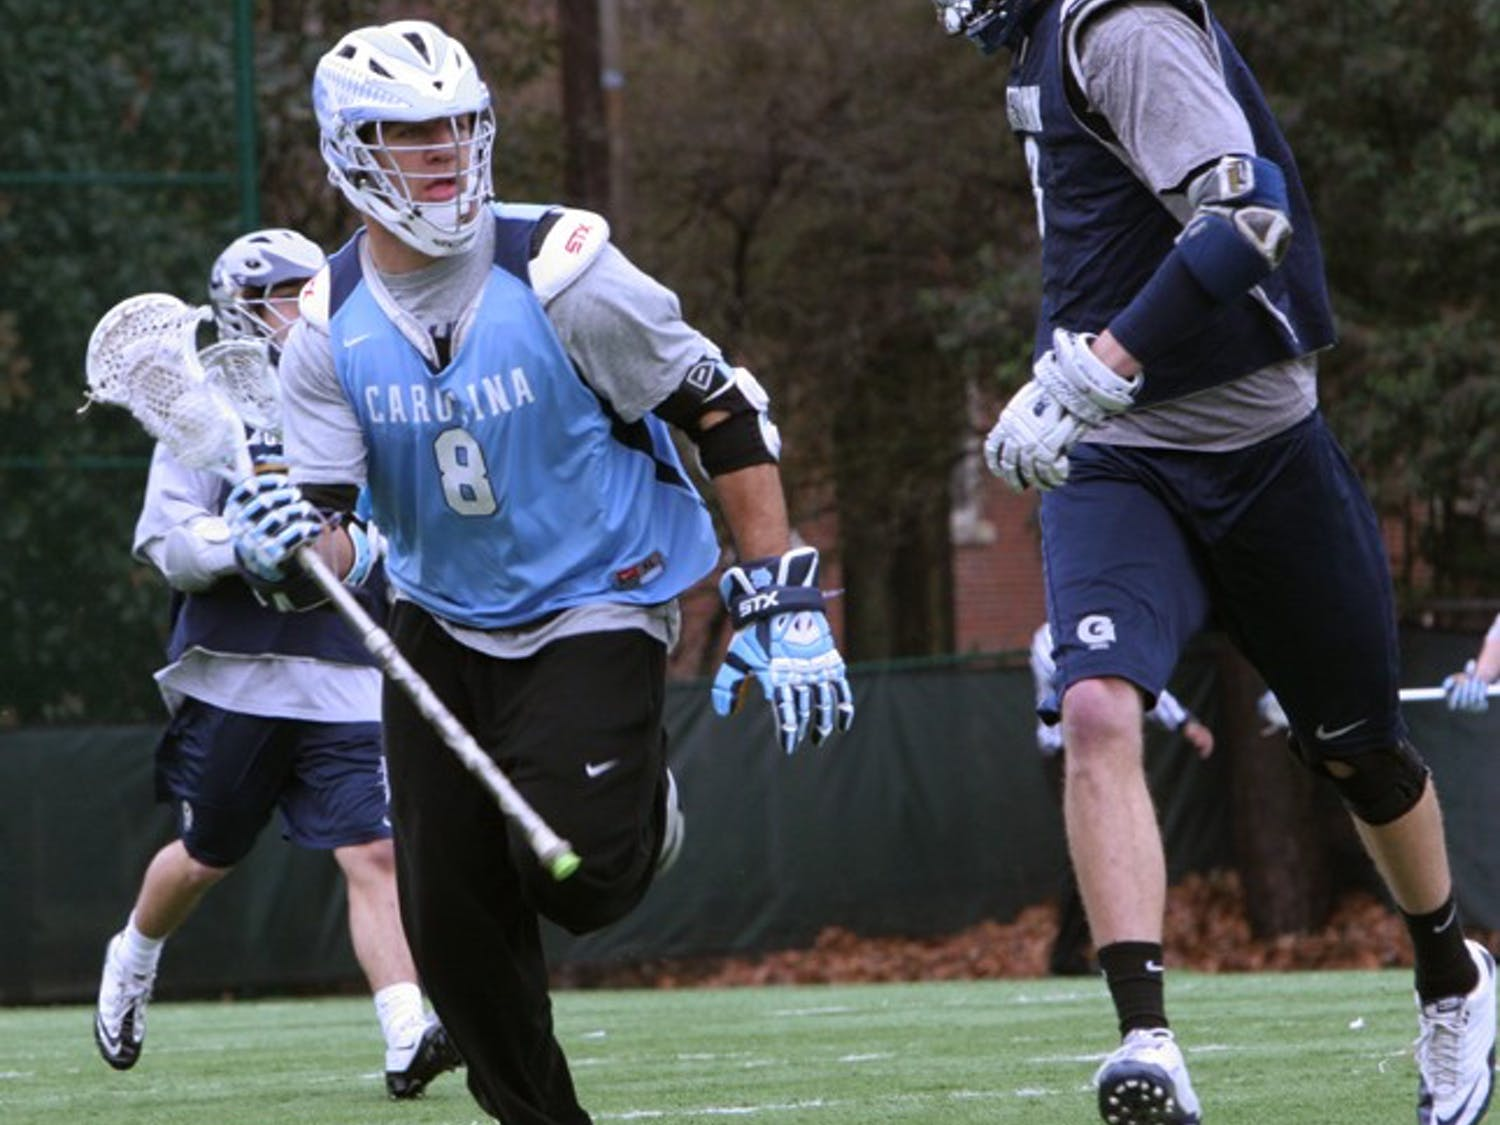 Freshman midfielder T.J. Kemp is one of 11 freshmen UNC coach Joe Breschi said could see regular playing time this season with the team.